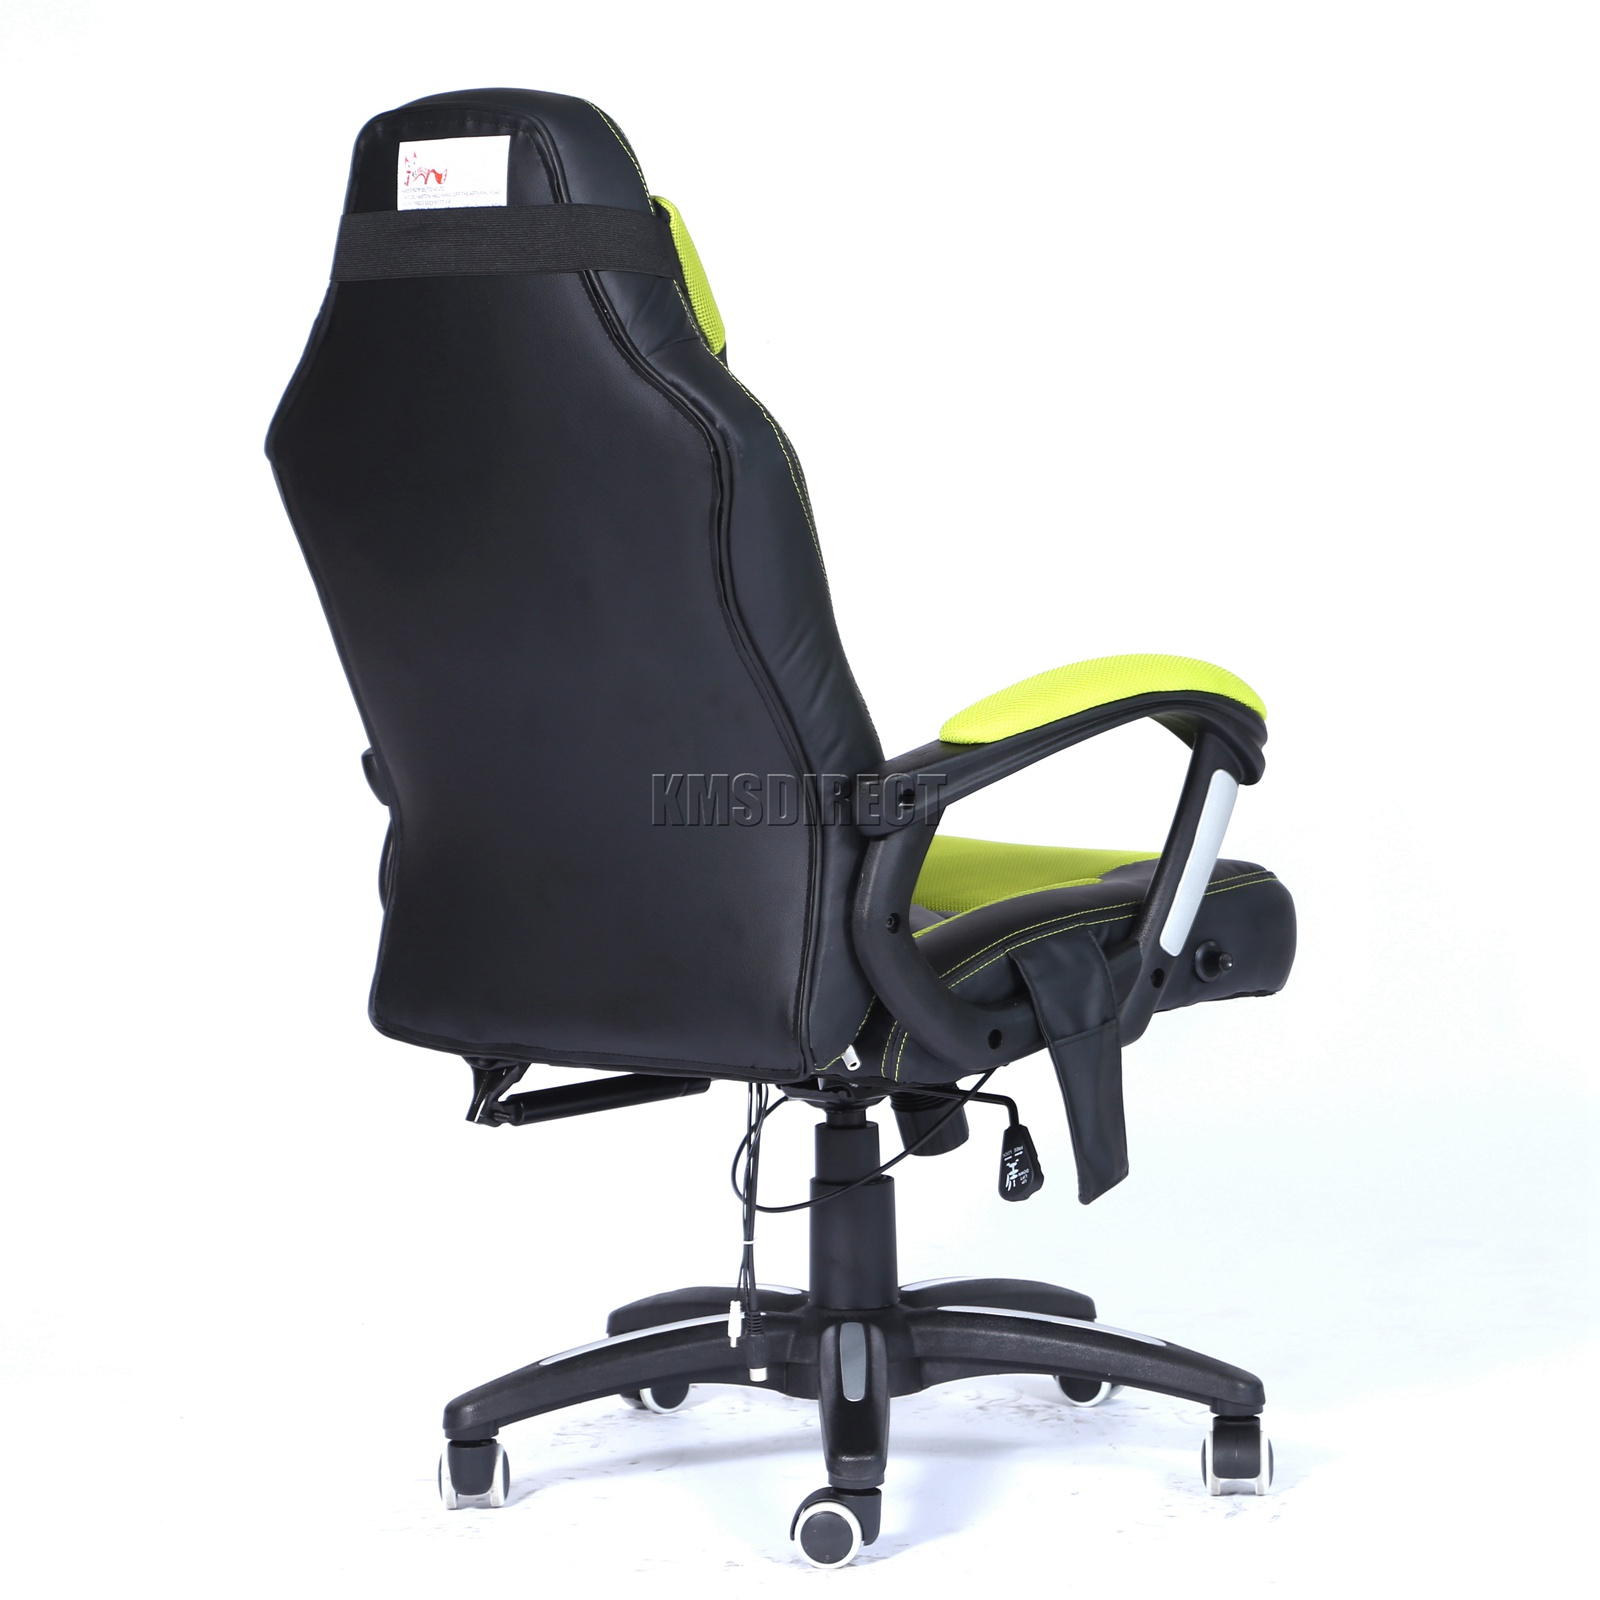 WestWood-Heated-Massage-Office-Chair-Gaming-amp-Computer-Recliner-Swivel-MC09 thumbnail 23